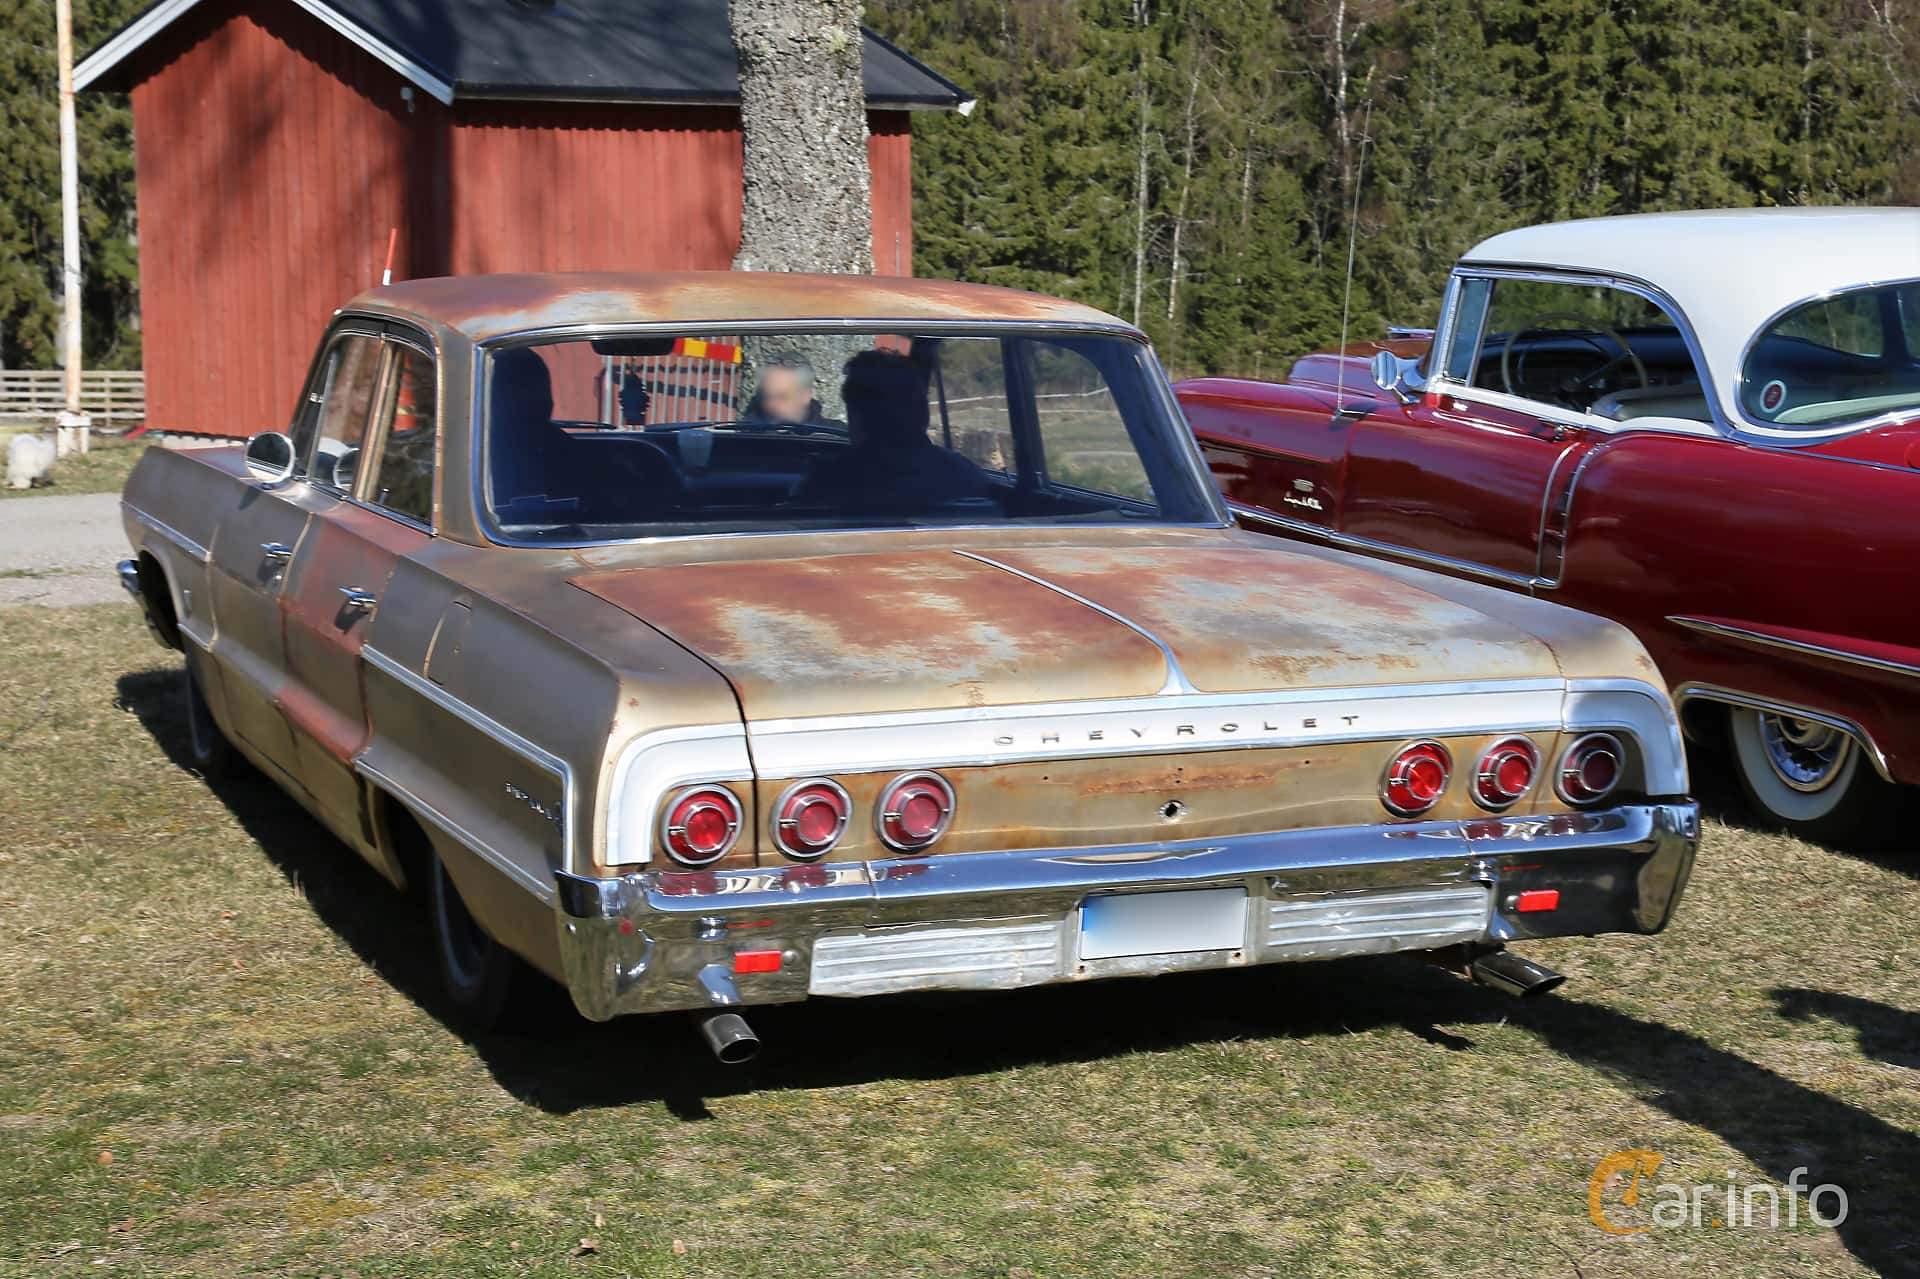 Chevrolet Impala Sedan 4.6 V8 Powerglide, 198hp, 1964 at Uddevalla Veteranbilsmarknad Backamo, Ljungsk 2019